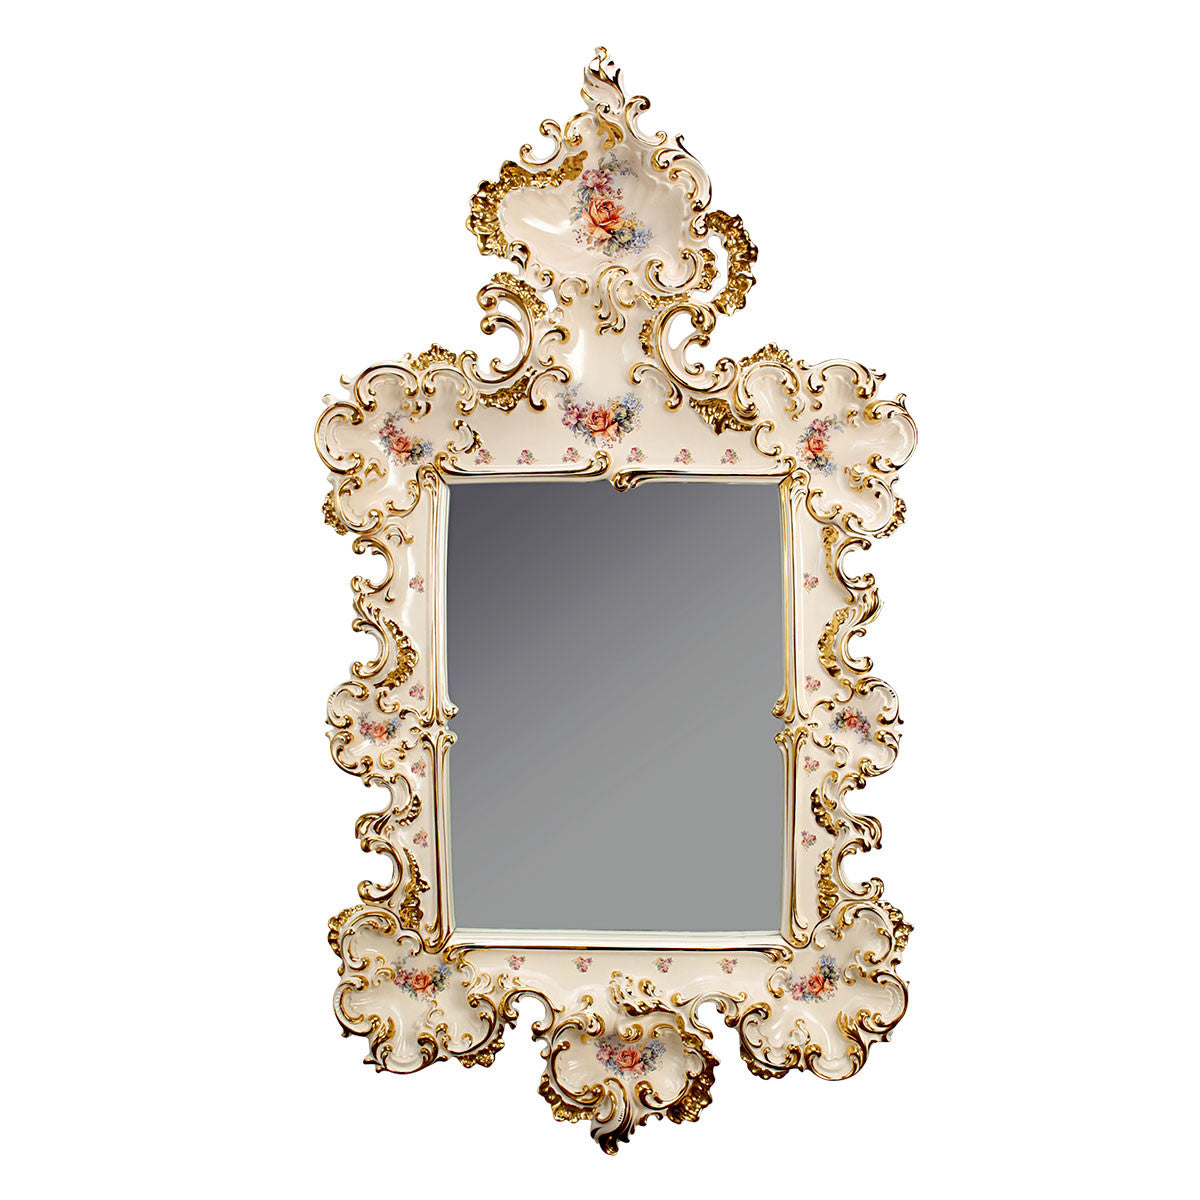 ceramic porcelain ivory big baroque mirror finished in pure gold and floral design handmade in Italy